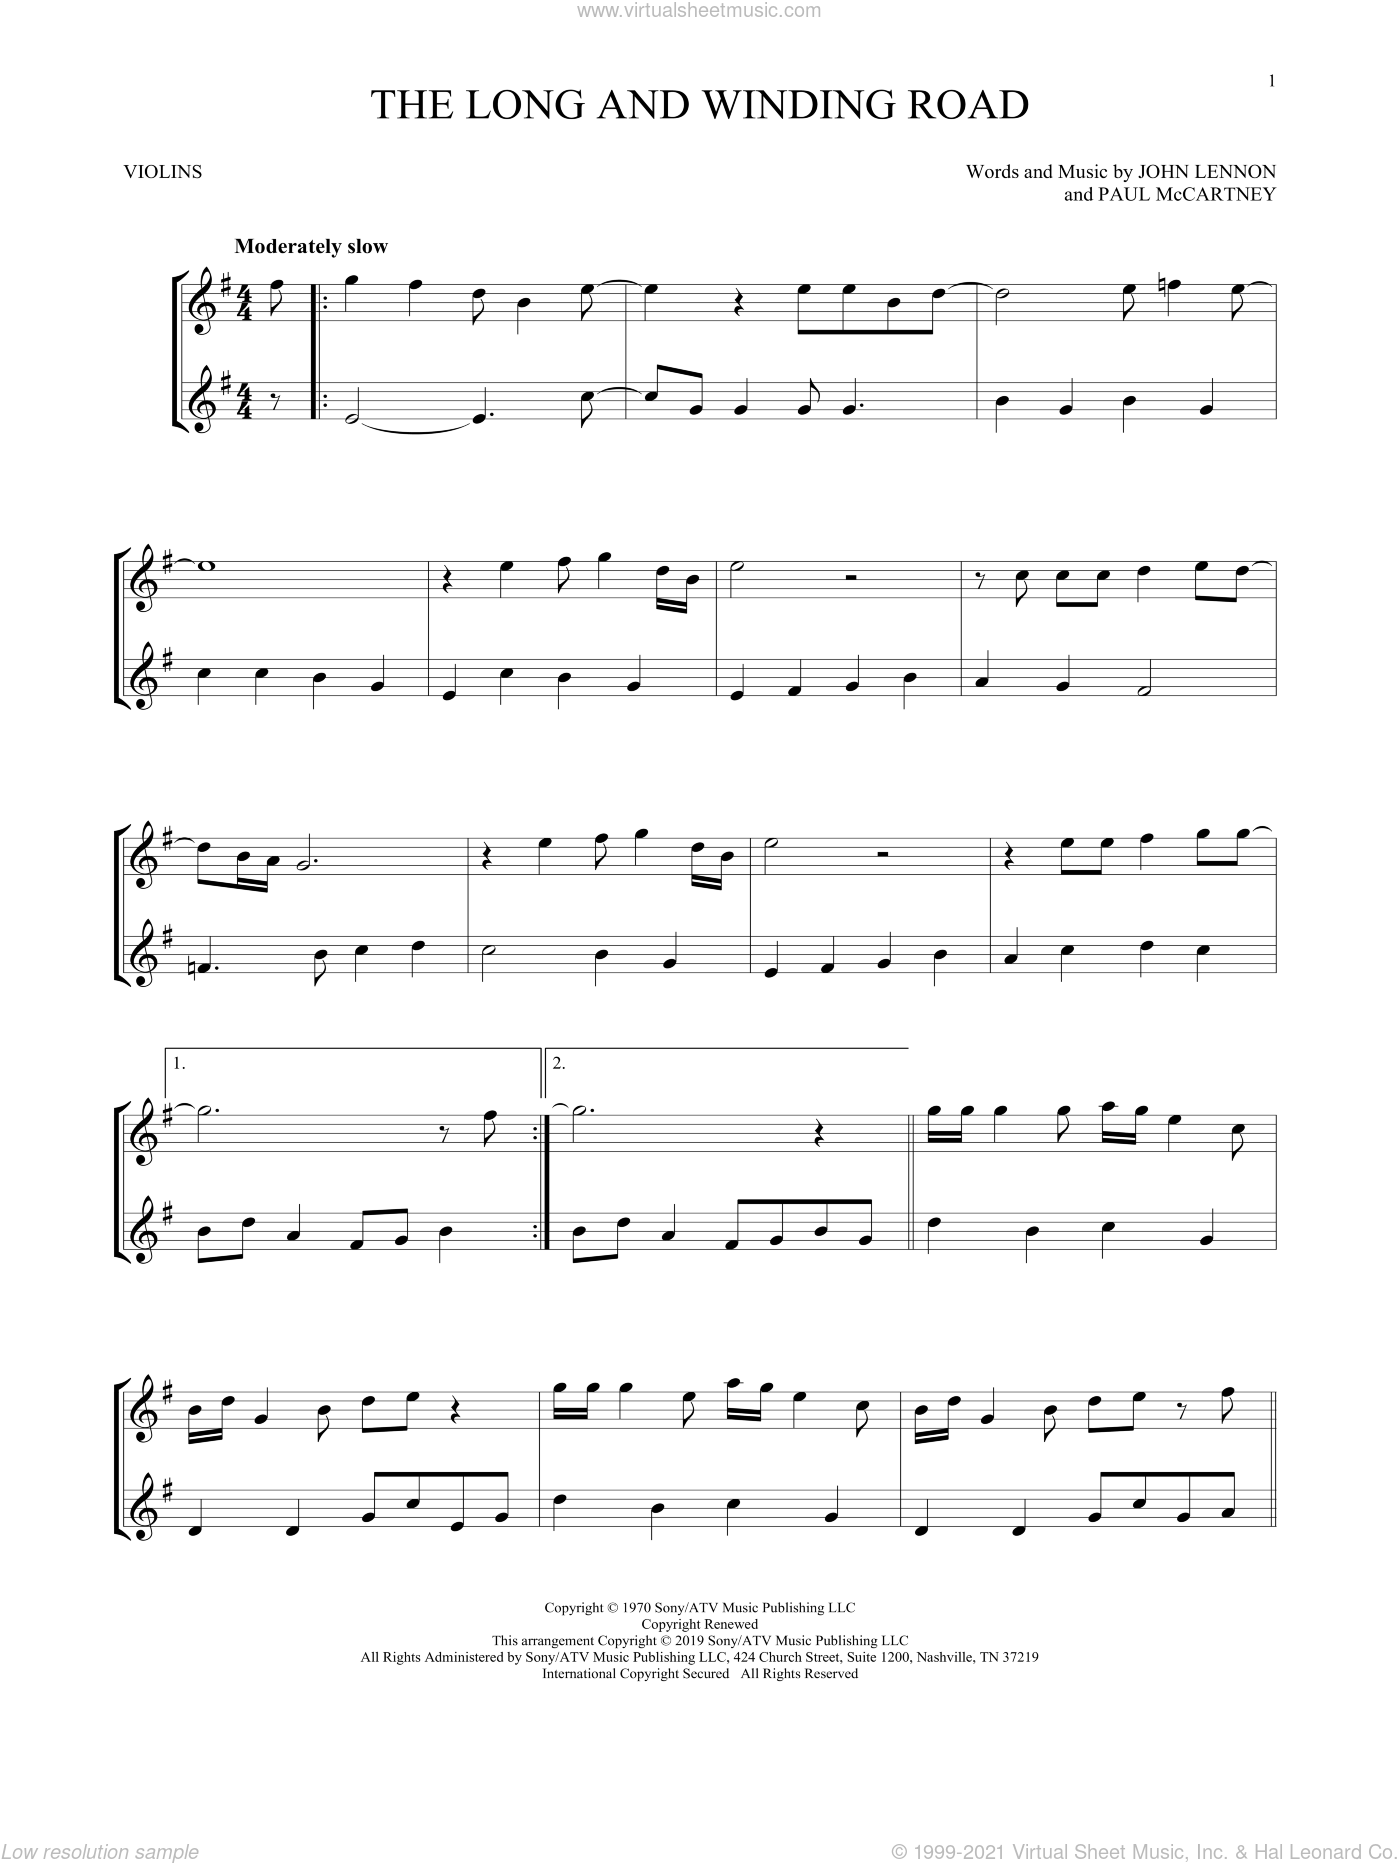 The Long And Winding Road sheet music for two violins (duets, violin duets) by The Beatles, John Lennon and Paul McCartney, intermediate skill level